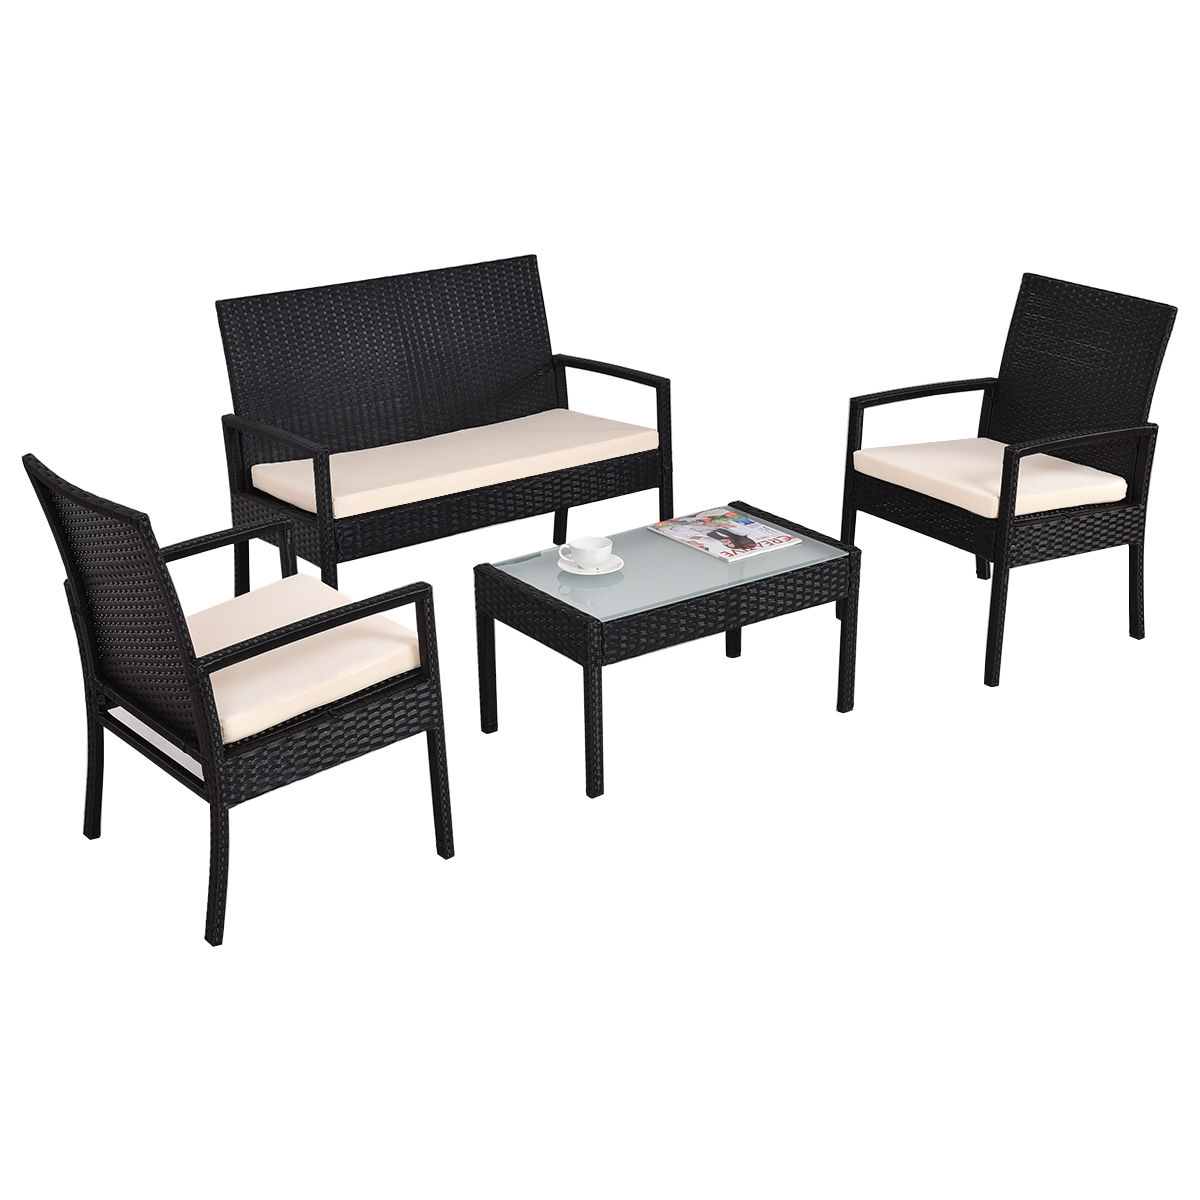 sofa seat height 60cm small bed with chaise wicker table and chairs set malta outdoor dining